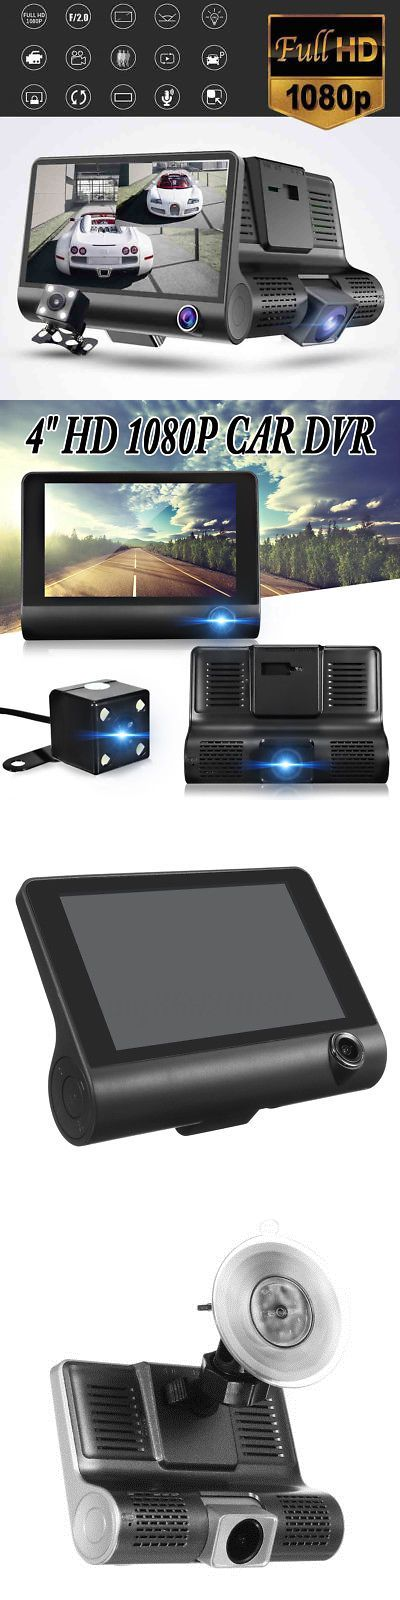 Digital Video Recorders Cards: Dual Lens 4 Hd 1080P Vehicle Car Dash Cam Rear Video Recorder Dvr + Camera -> BUY IT NOW ONLY: $46.99 on eBay!